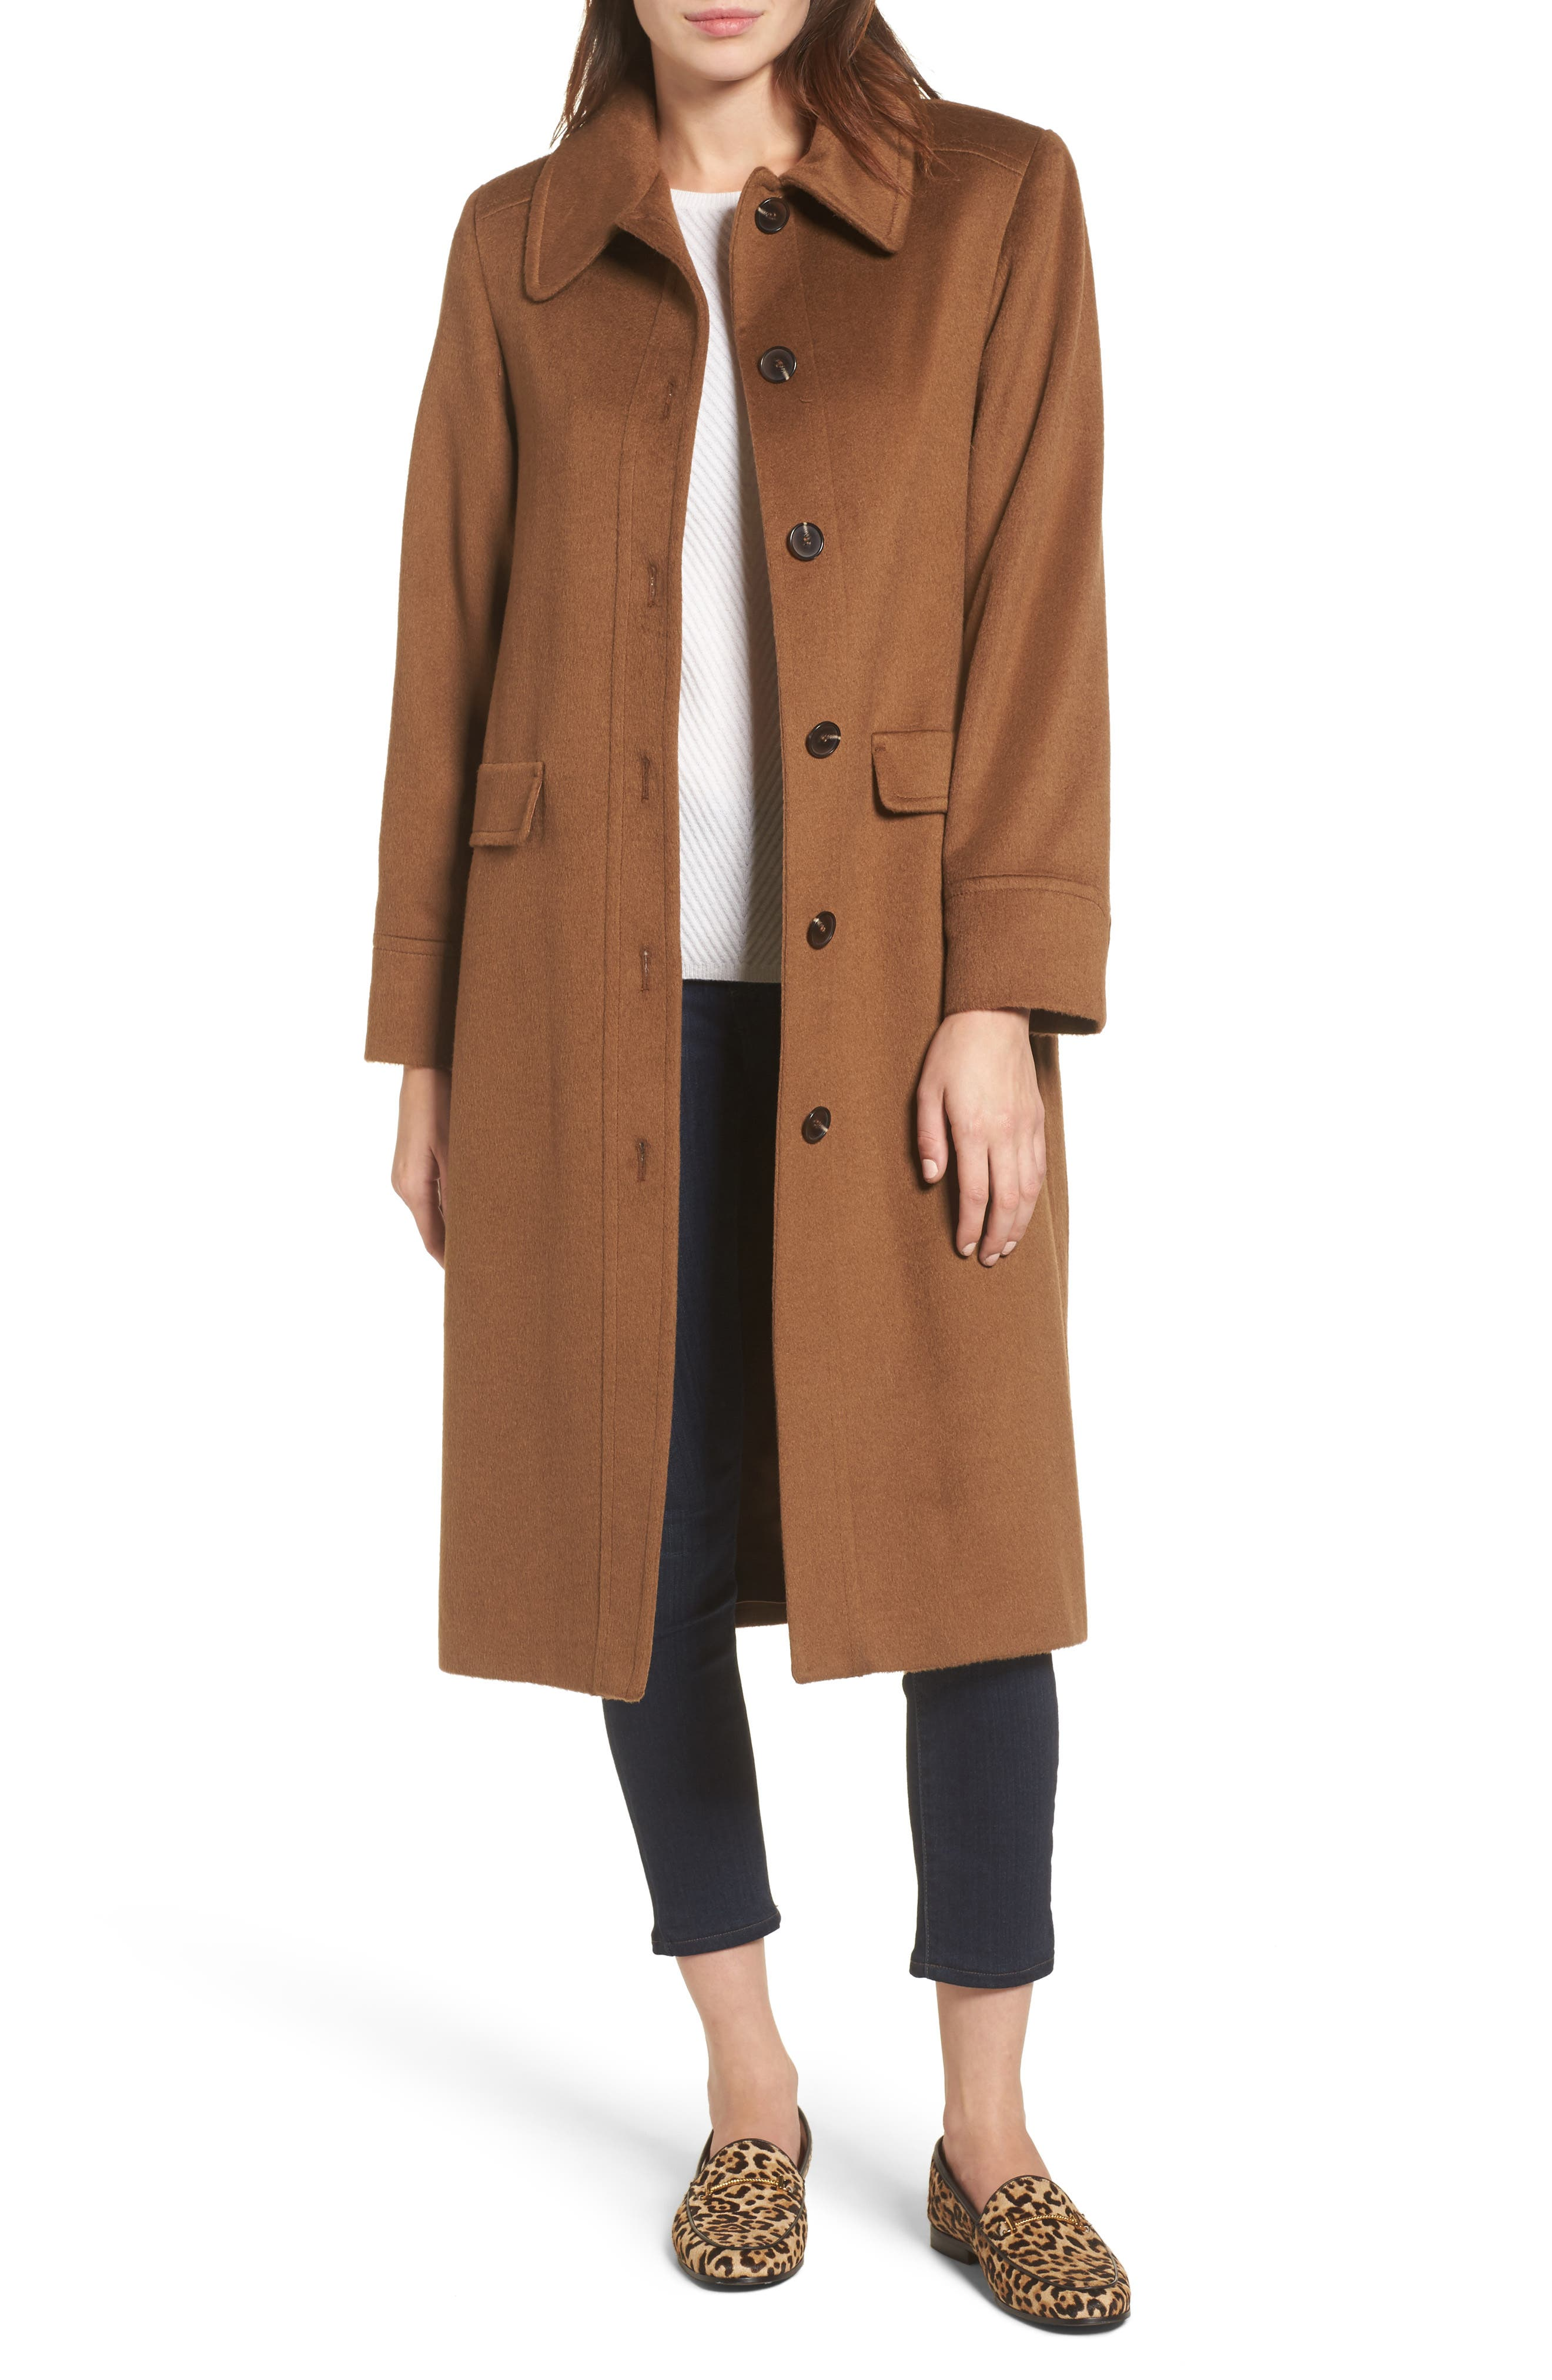 Sofia Cashmere Belted Wool & Cashmere Coat